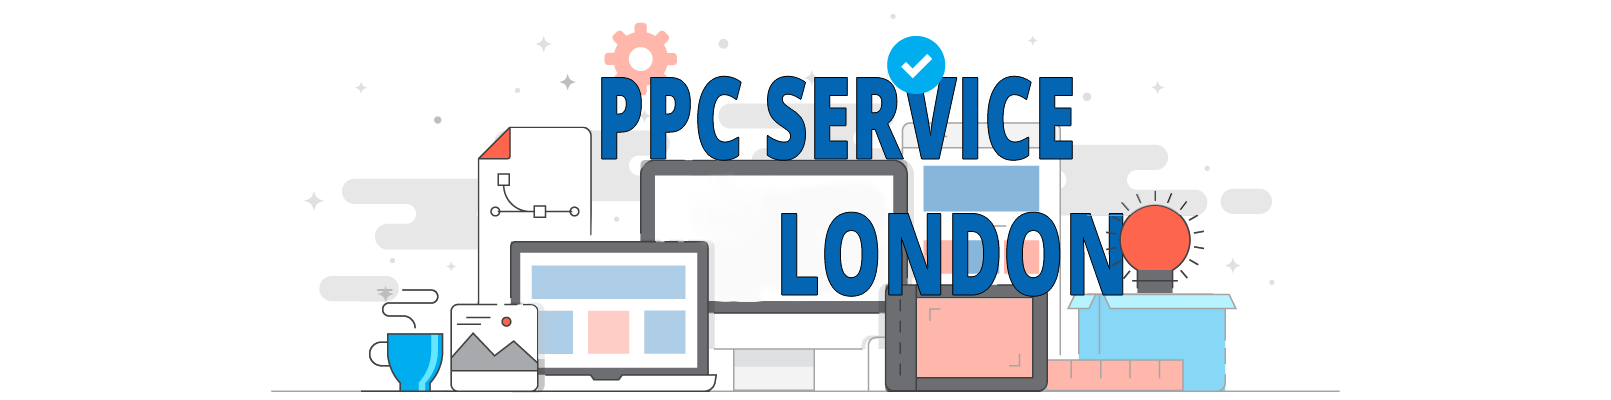 seek social ppc service london header with transparent background